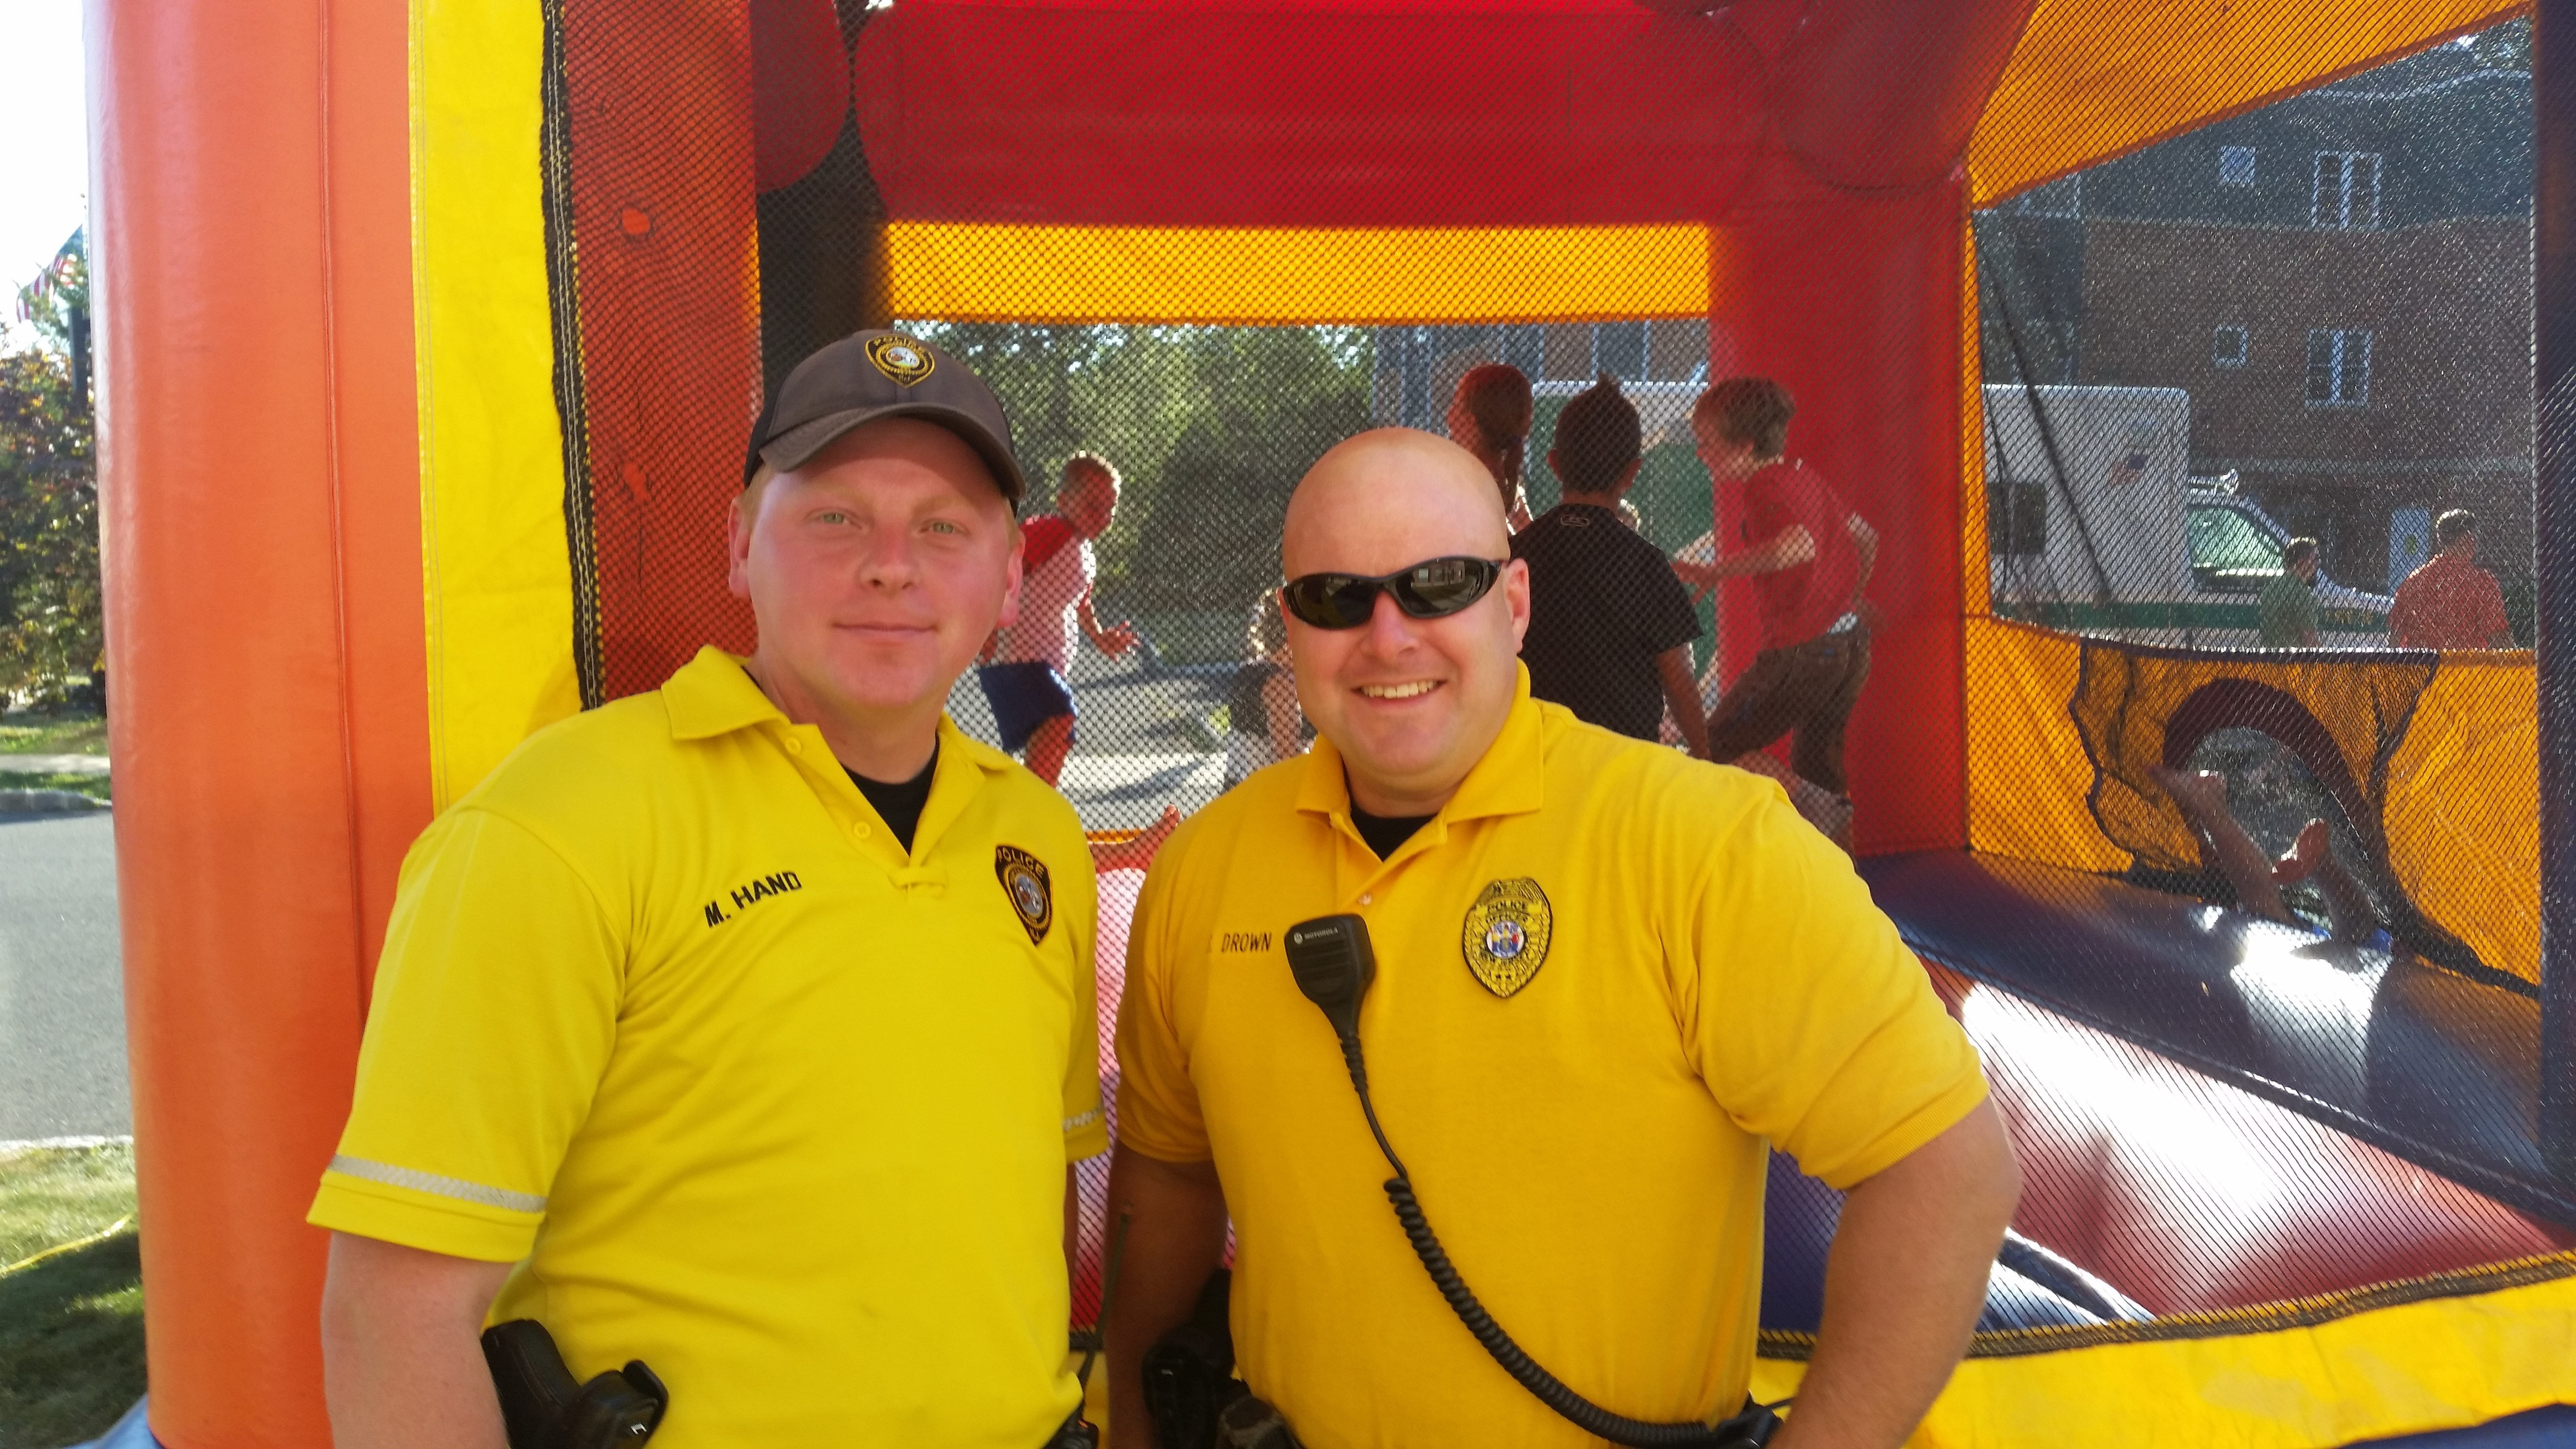 New Providence Comes Together for National Night Out 2015